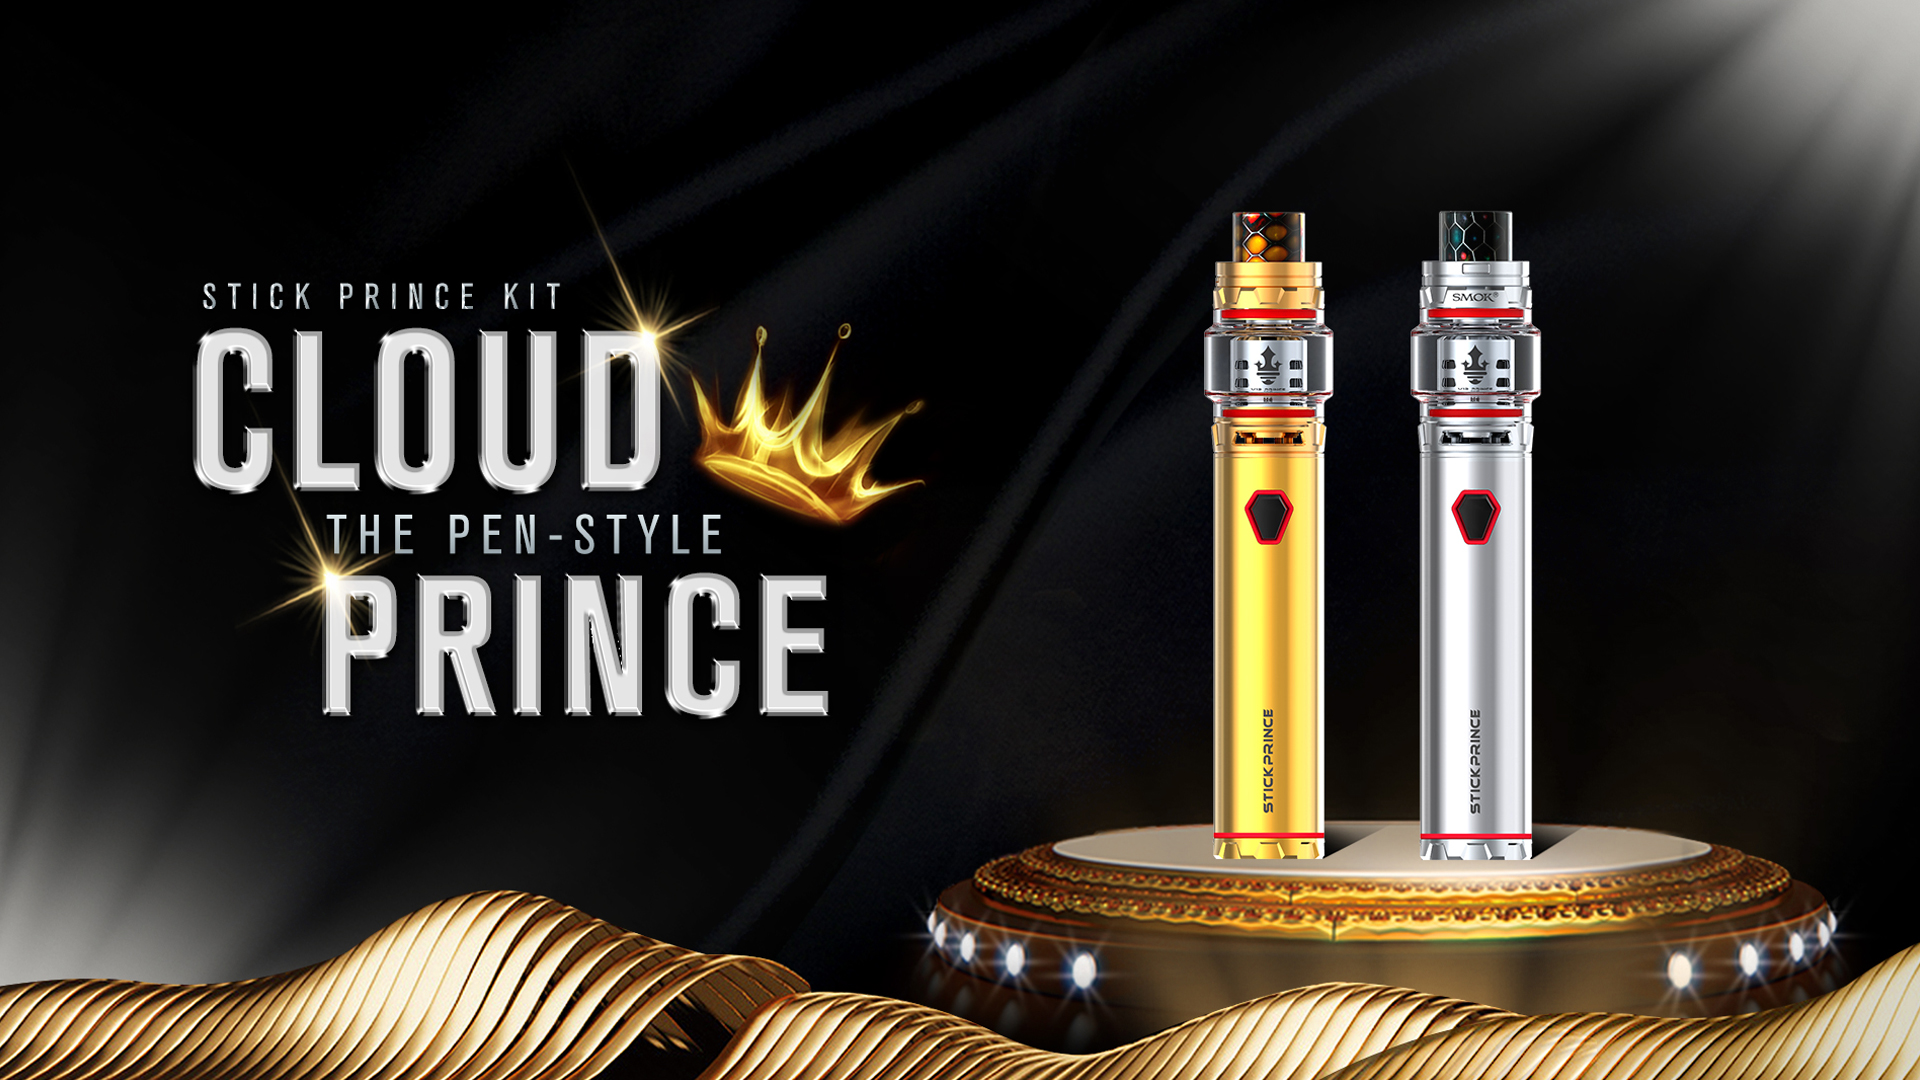 Stick Prince Smok 174 Innovation Keeps Changing The Vaping